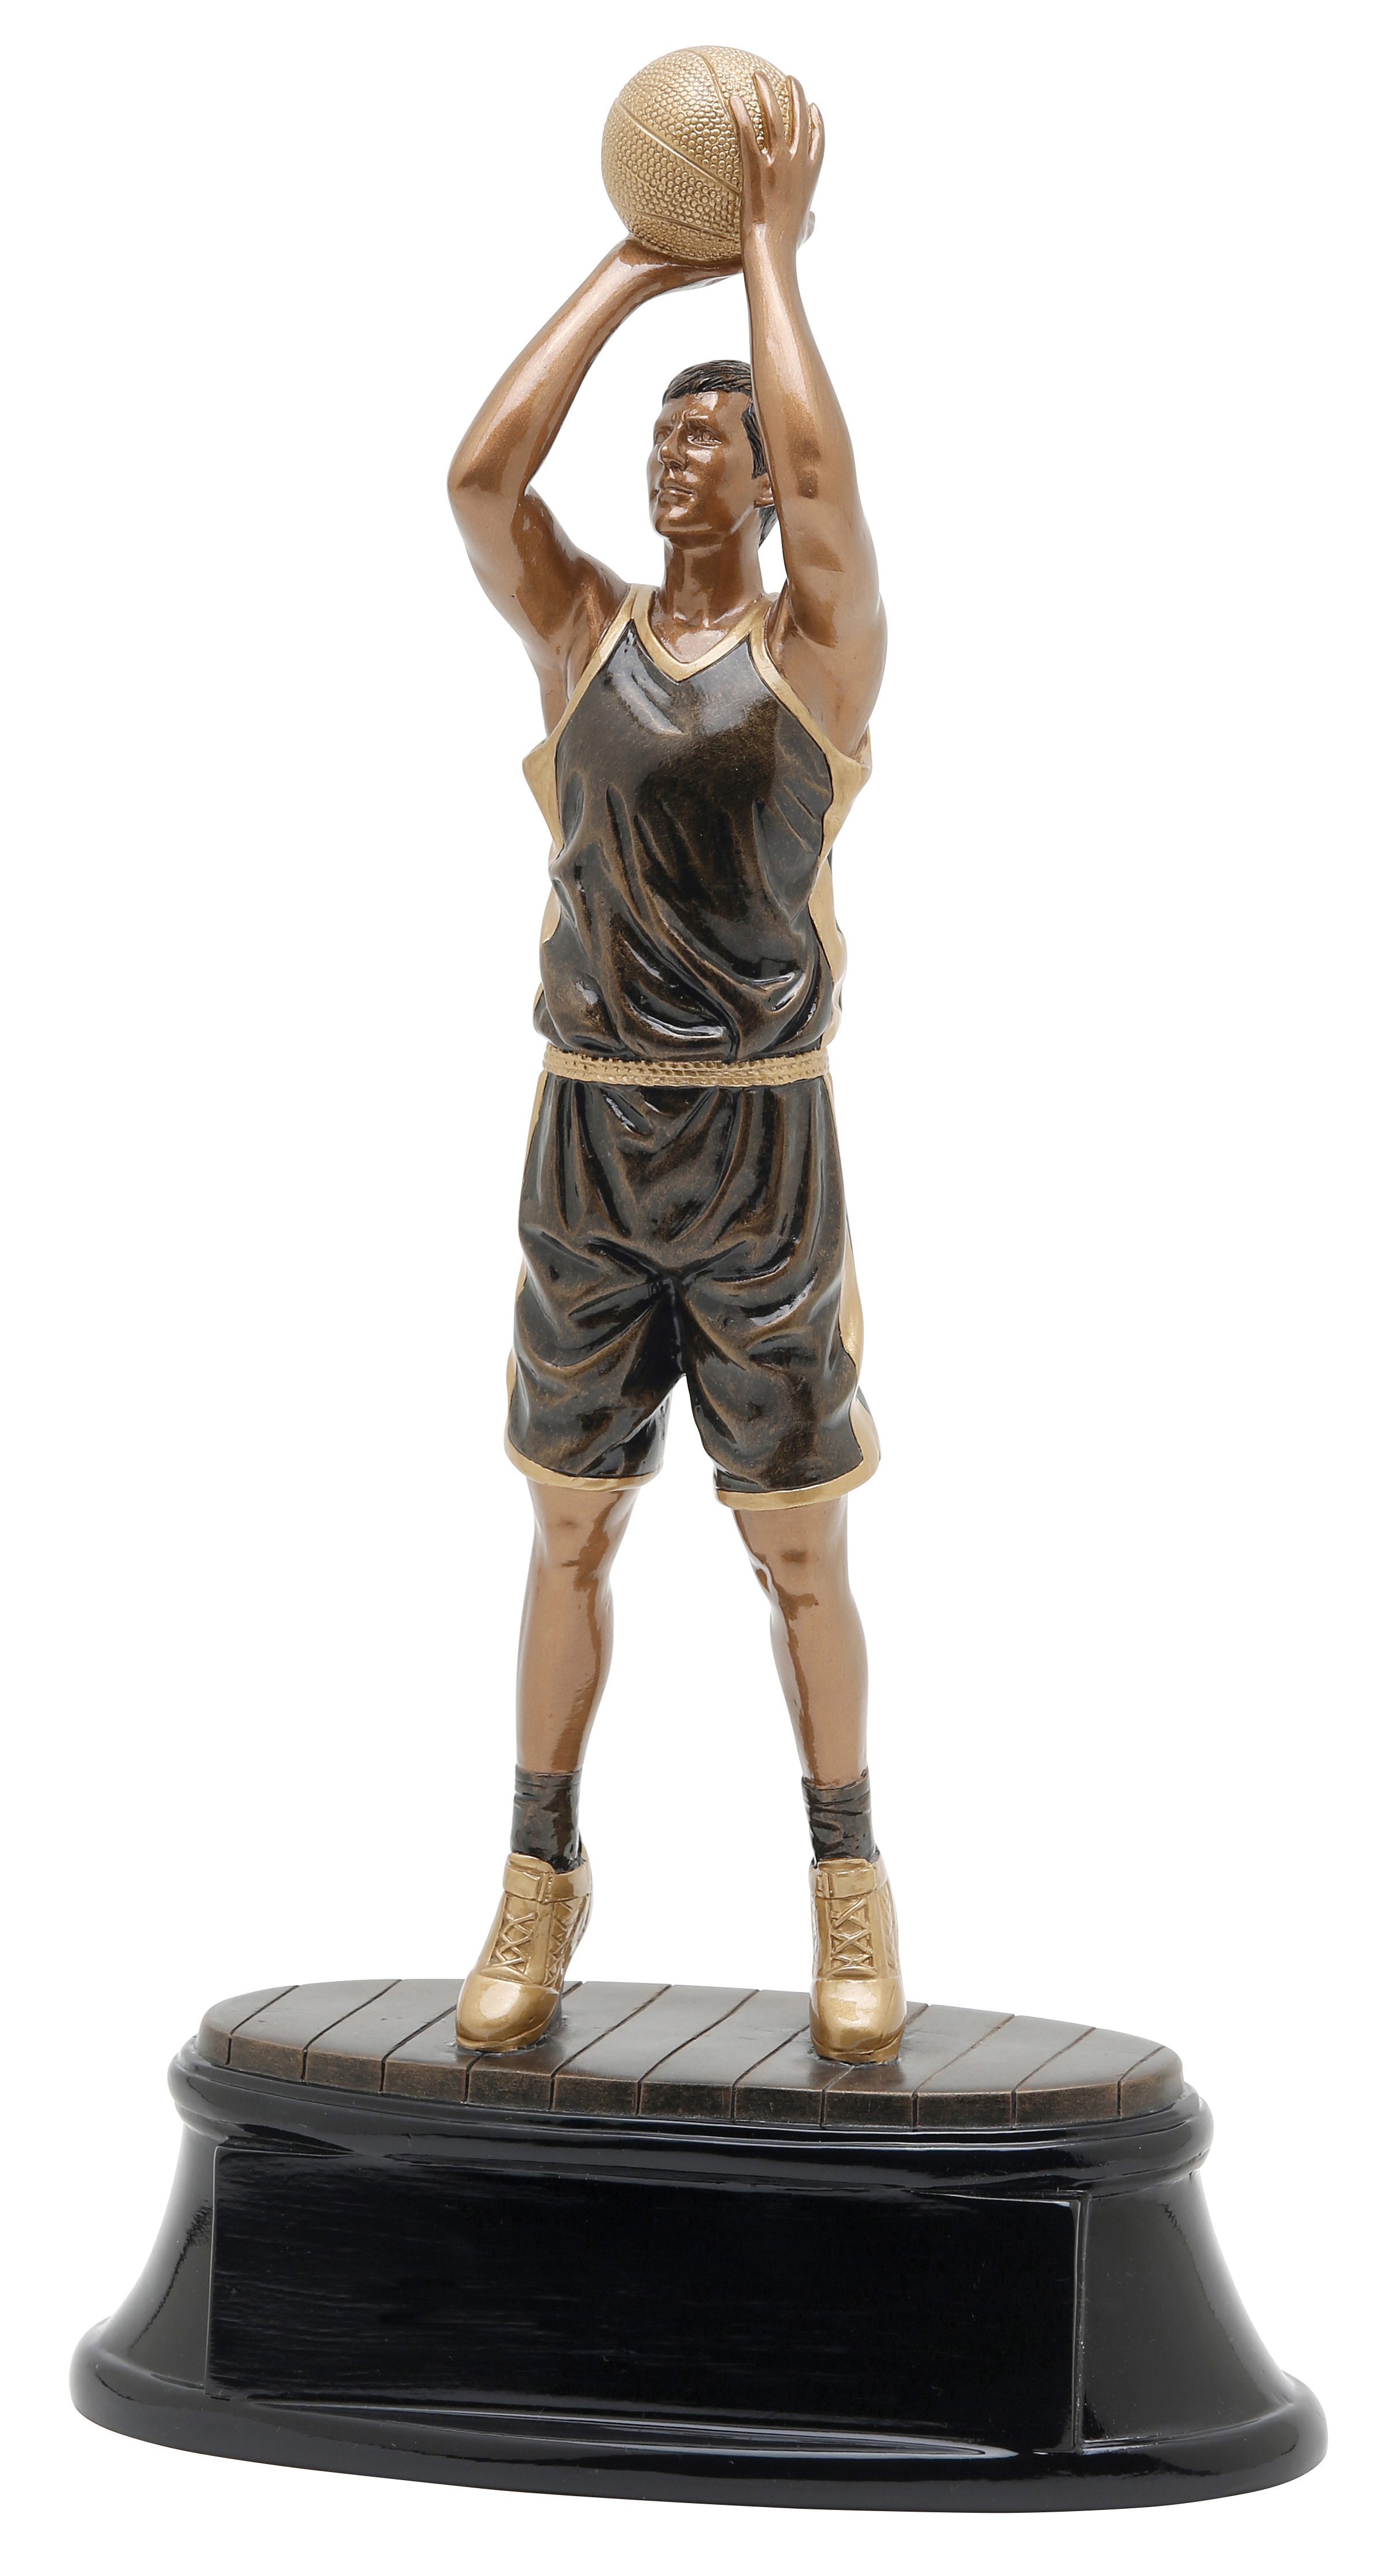 """Basketball - Male   X-Large - 90705GS - 13.5"""" tall  Large - 90605GS - 12"""" tall  Medium - 90505GS - 10"""" tall  Small - 90405GS - 8.25"""" tall"""